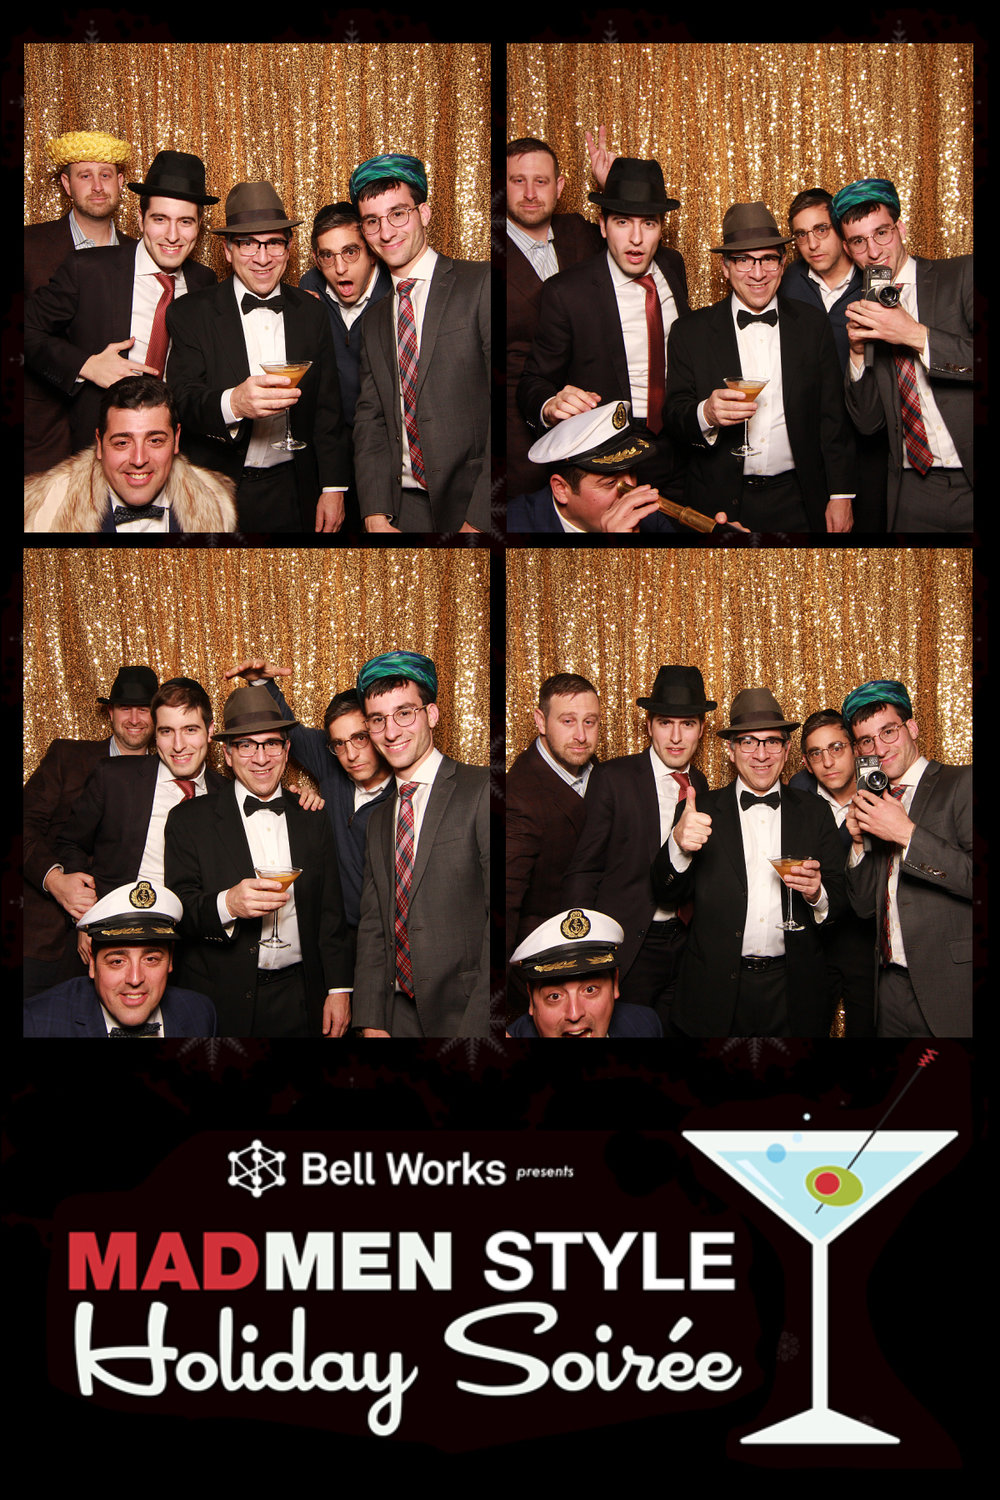 Bell Works Holiday Party December 13, 2016